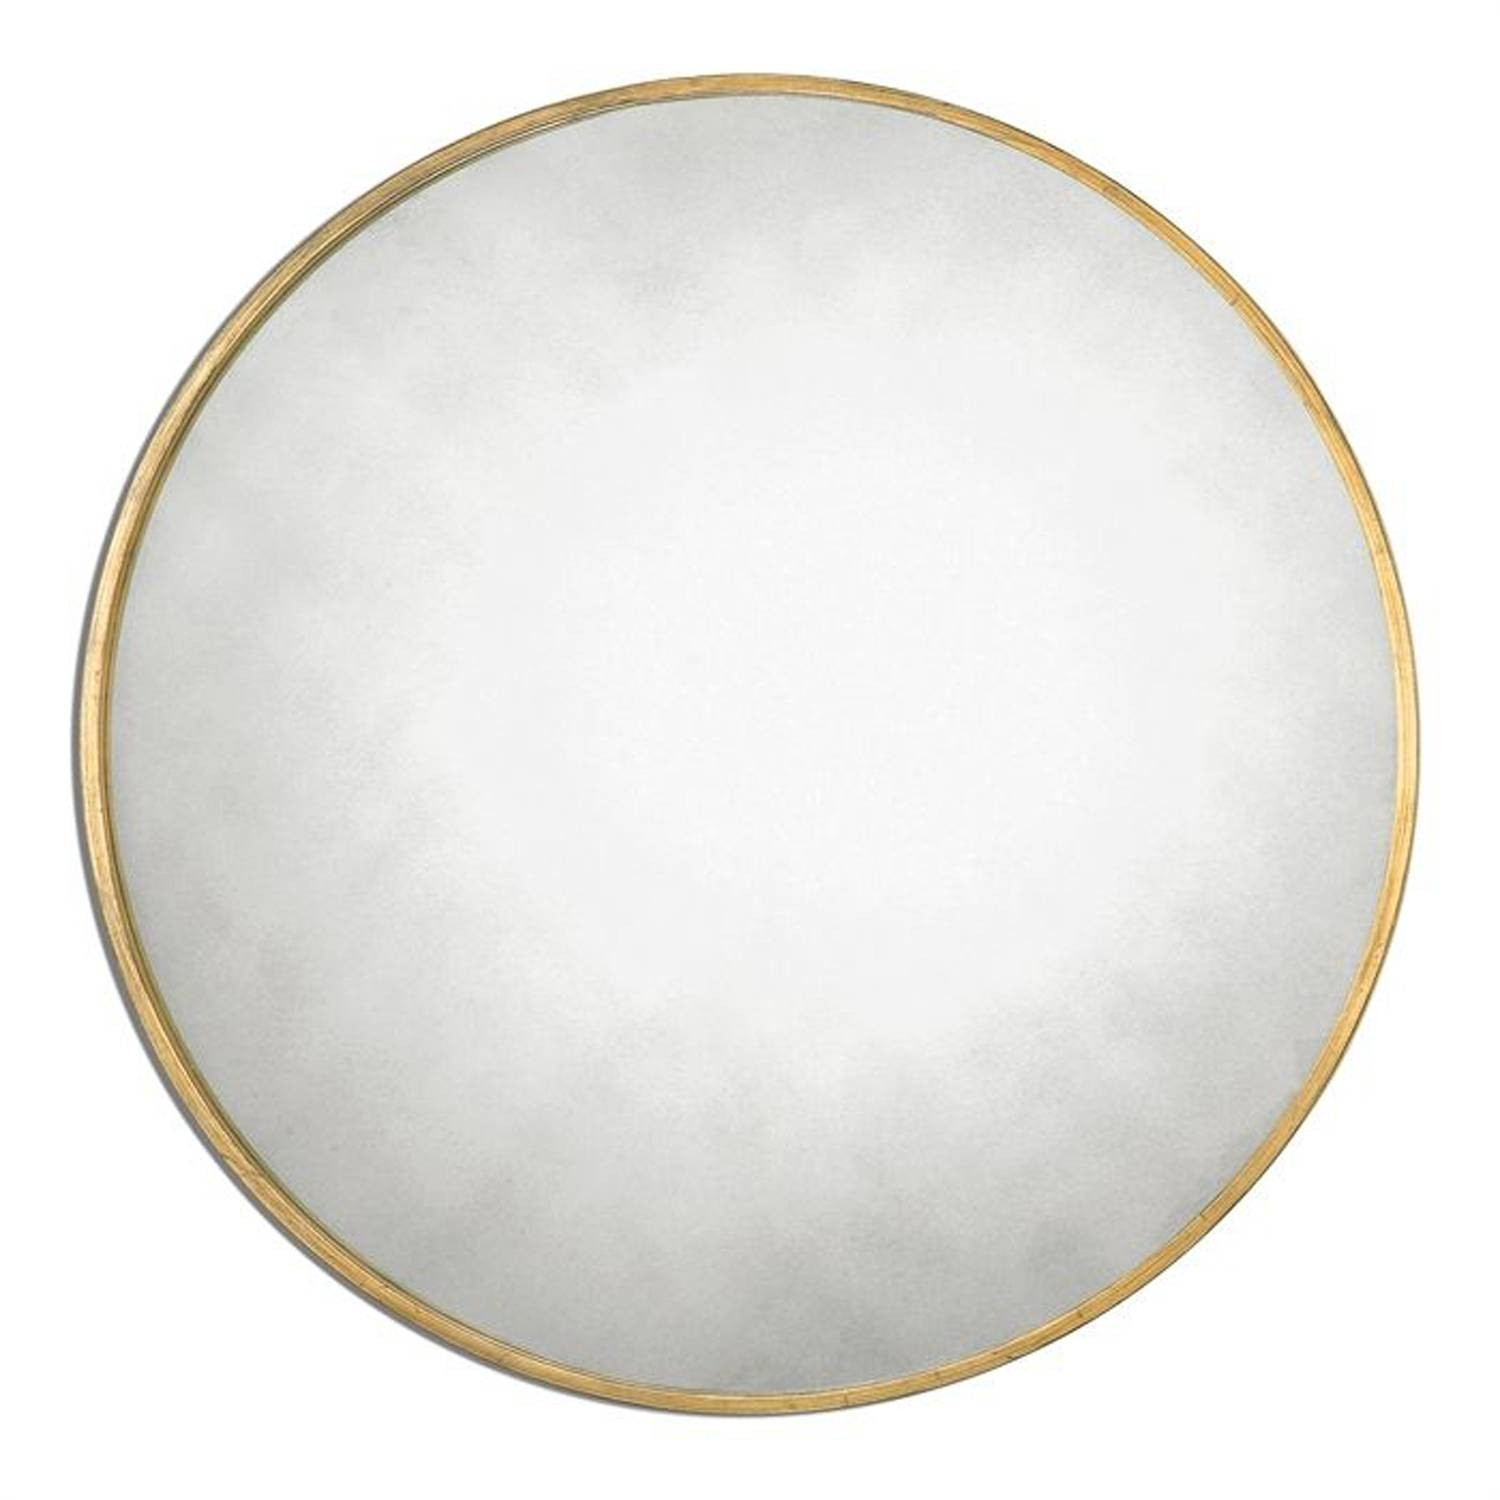 Junius Round Gold Round Mirror Uttermost Wall Mirror Mirrors Home with Antique Round Mirrors (Image 13 of 25)